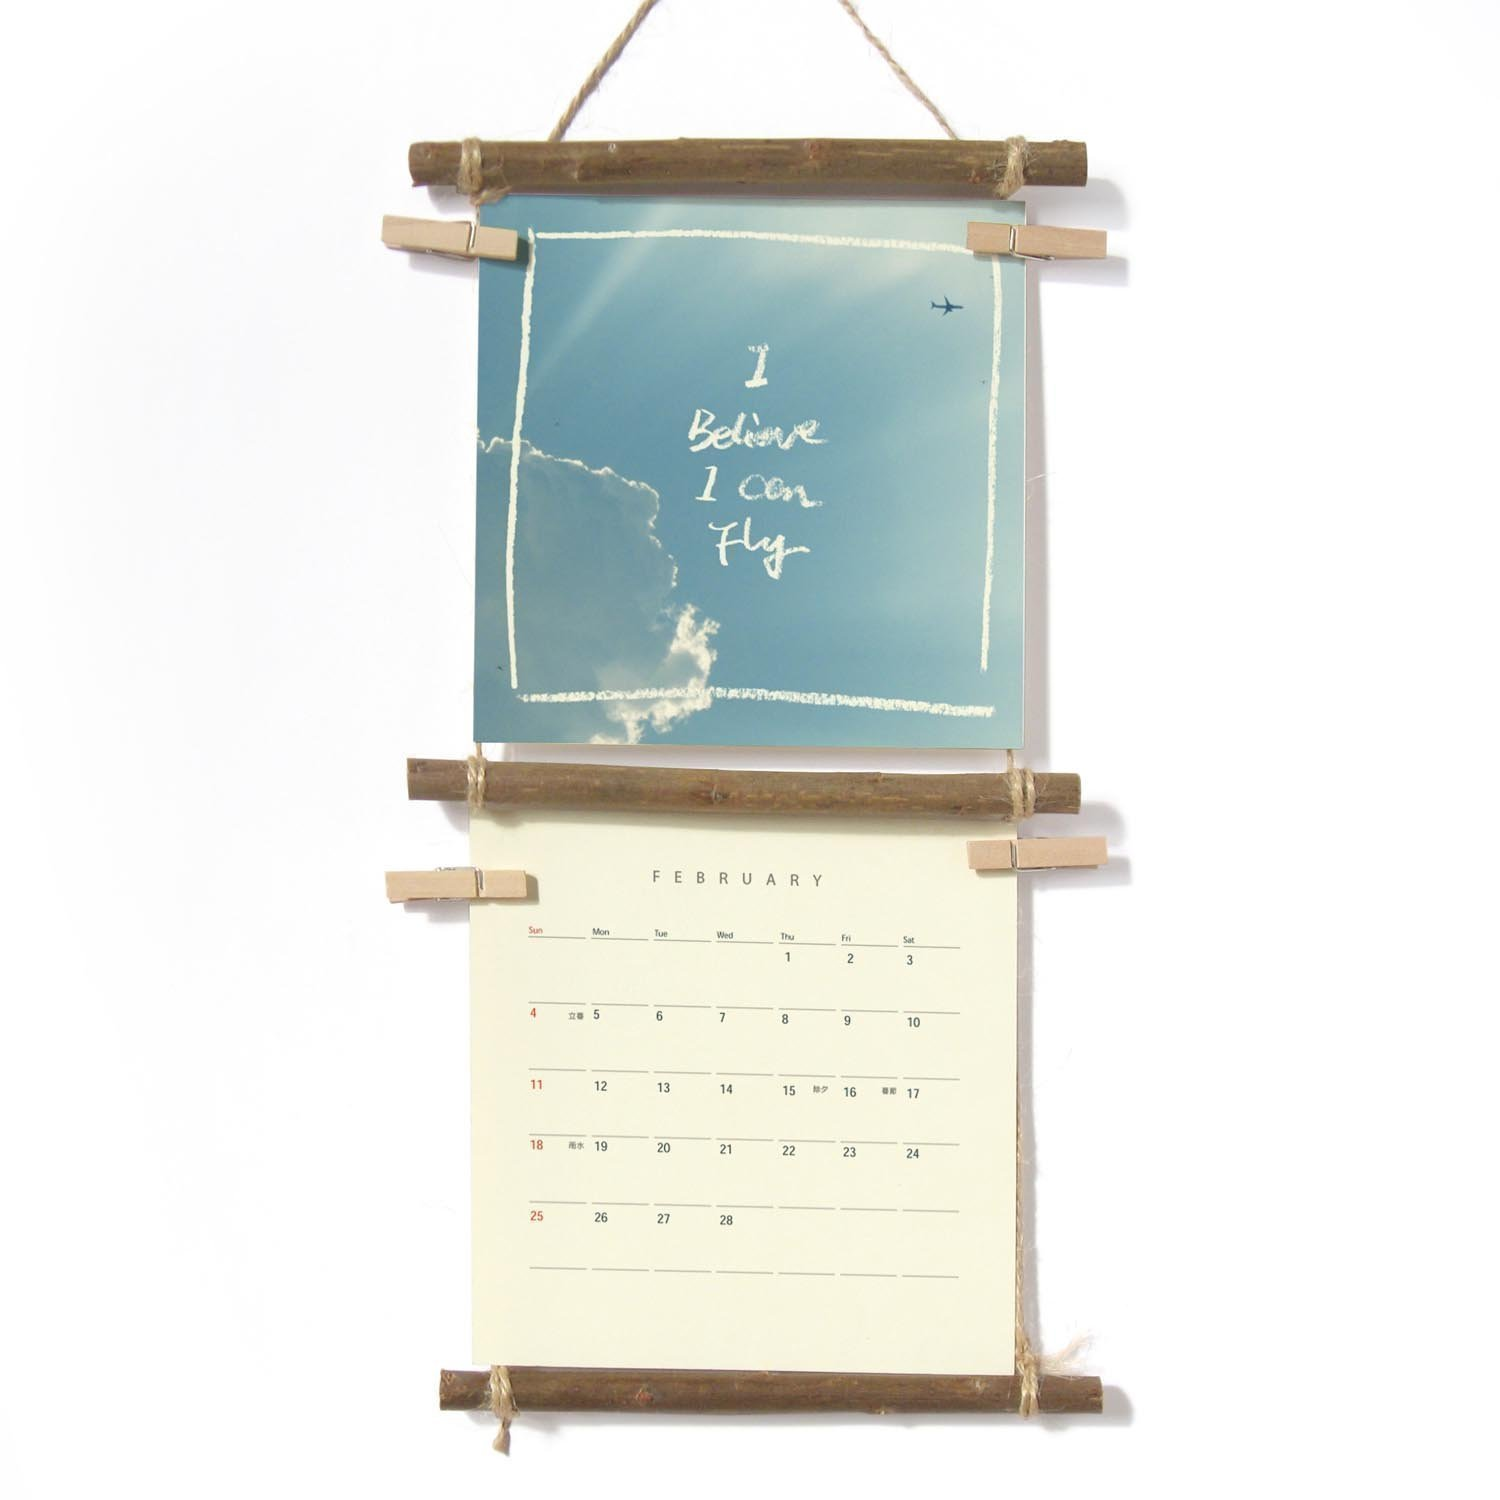 Cloud and Sky, 2018 Wall Calendar With handmade Ladder Shelf - Stocking Stuffer, Quote Print Calendar, Christmas Gift